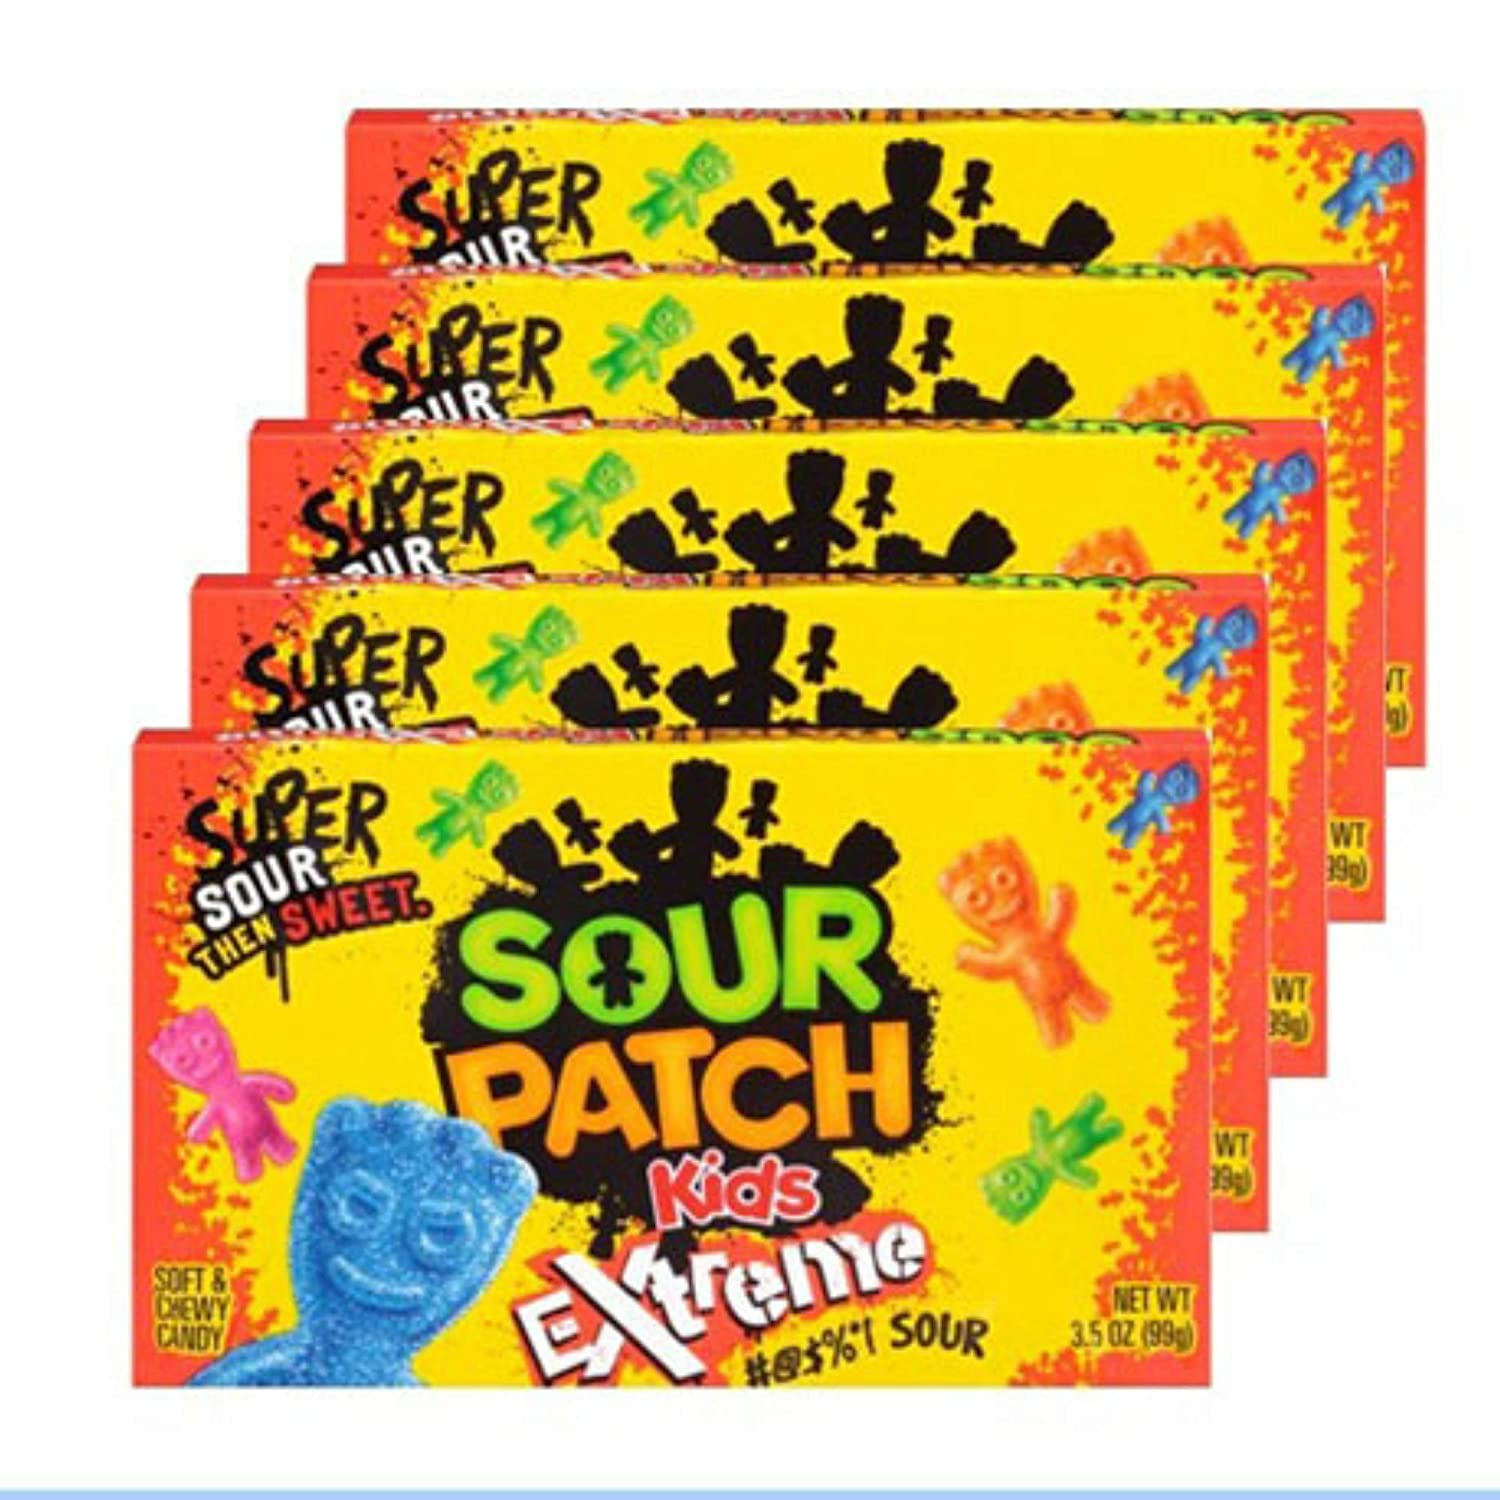 Amazon Com Super Sour Then Sweet Sour Patch Kids Extreme Movie Theater Candy Sour Gummy Candy Sour Candy Box 5 Pack 3 5oz By Coolgadgetgift Grocery Gourmet Food